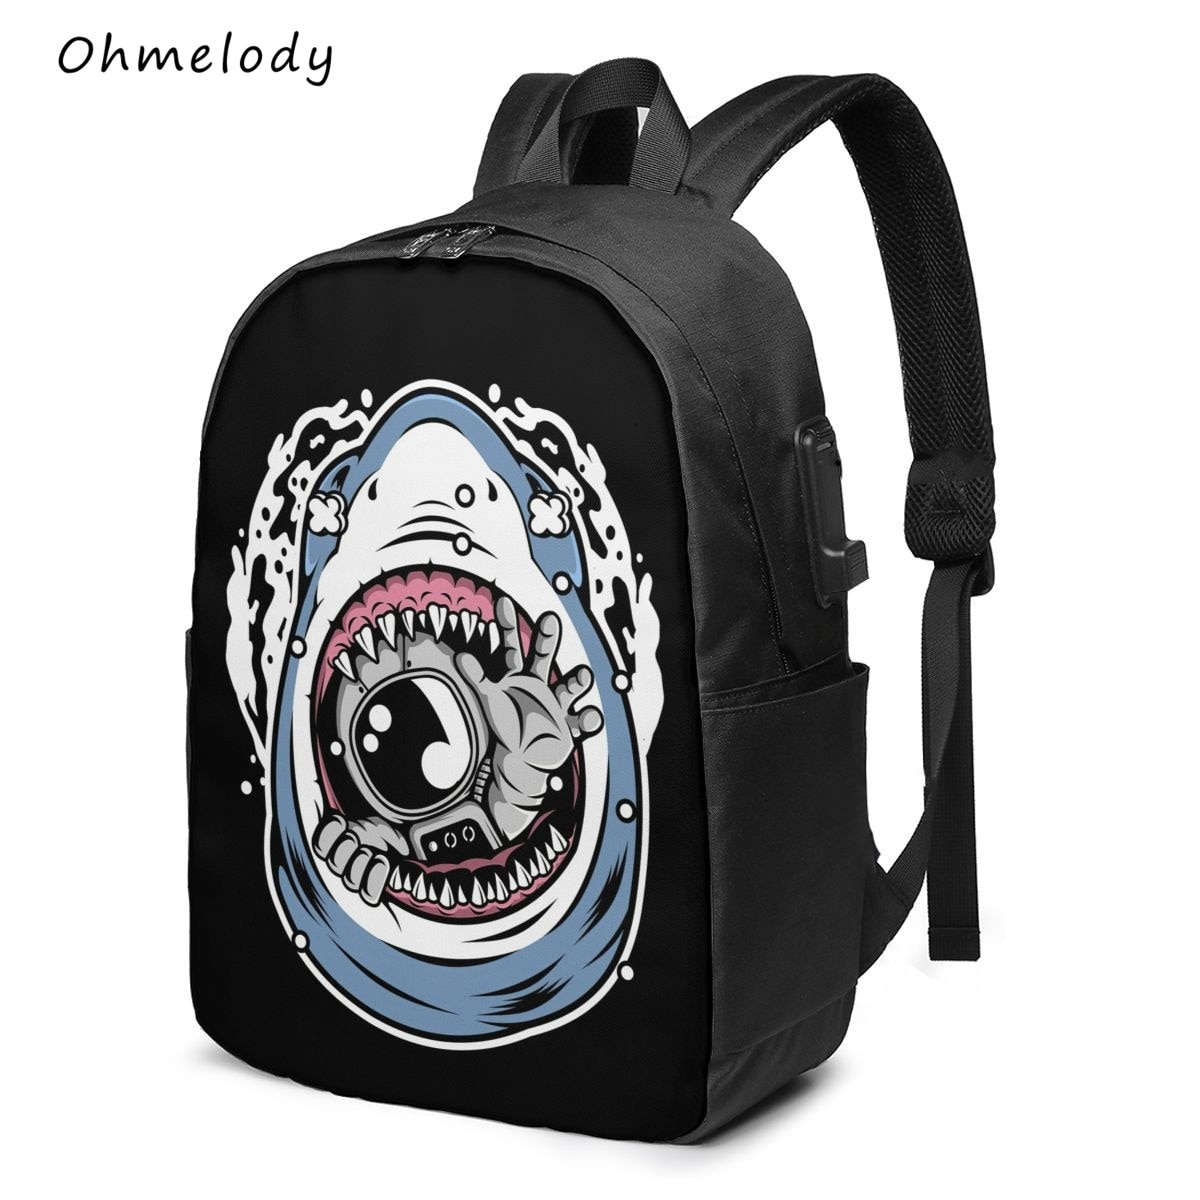 Durable Middle School College Backpack Water Resistant Casual Daypack Cartoon Astronaut Multipurpose